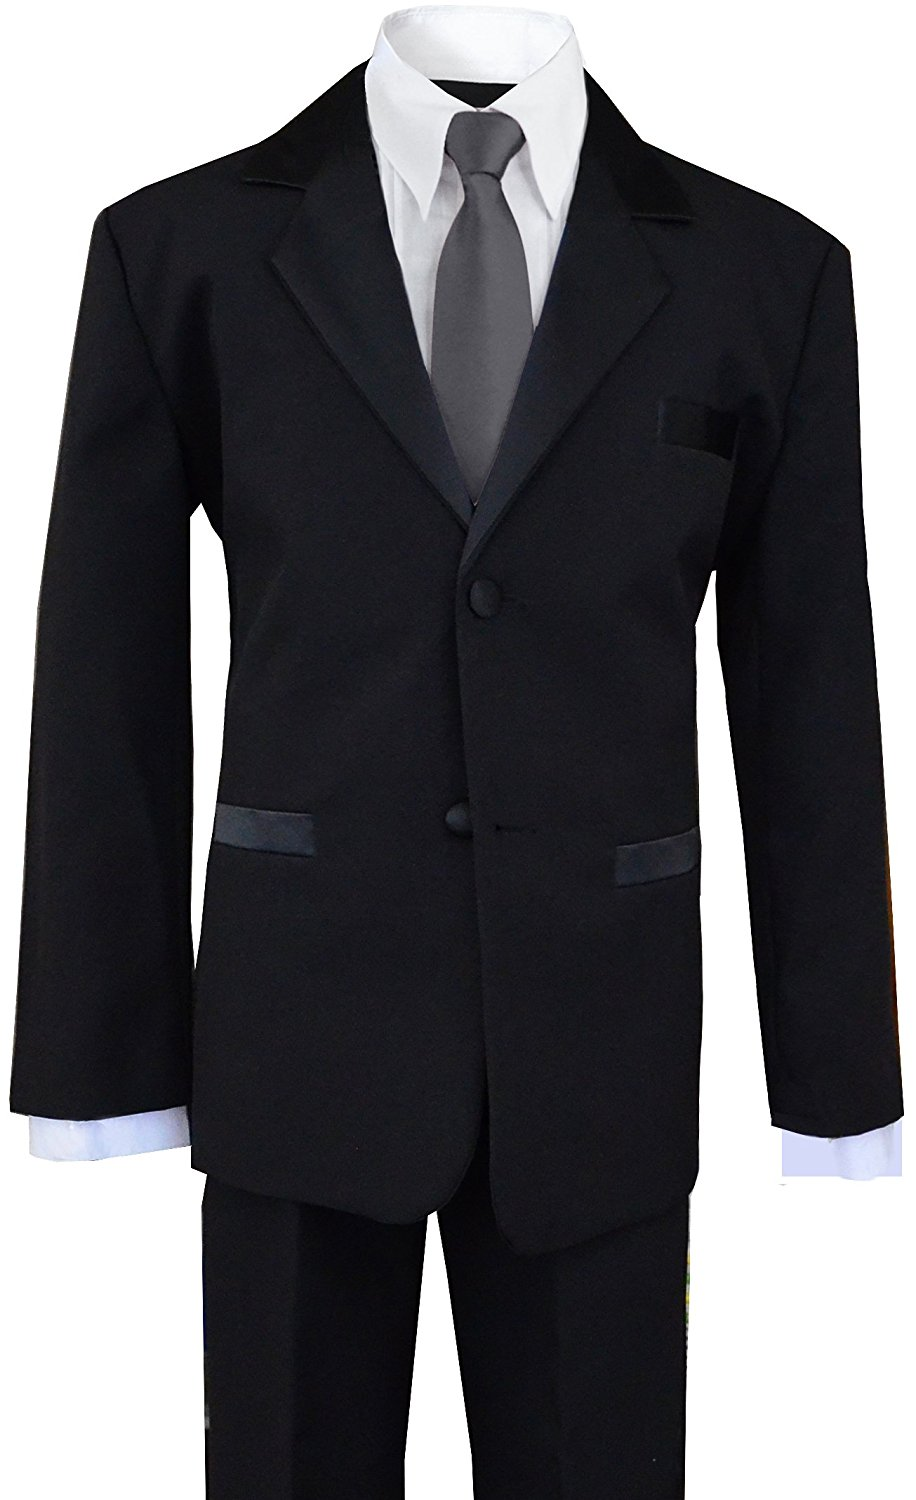 Cheap Black Tuxedo Red Tie Find Black Tuxedo Red Tie Deals On Line